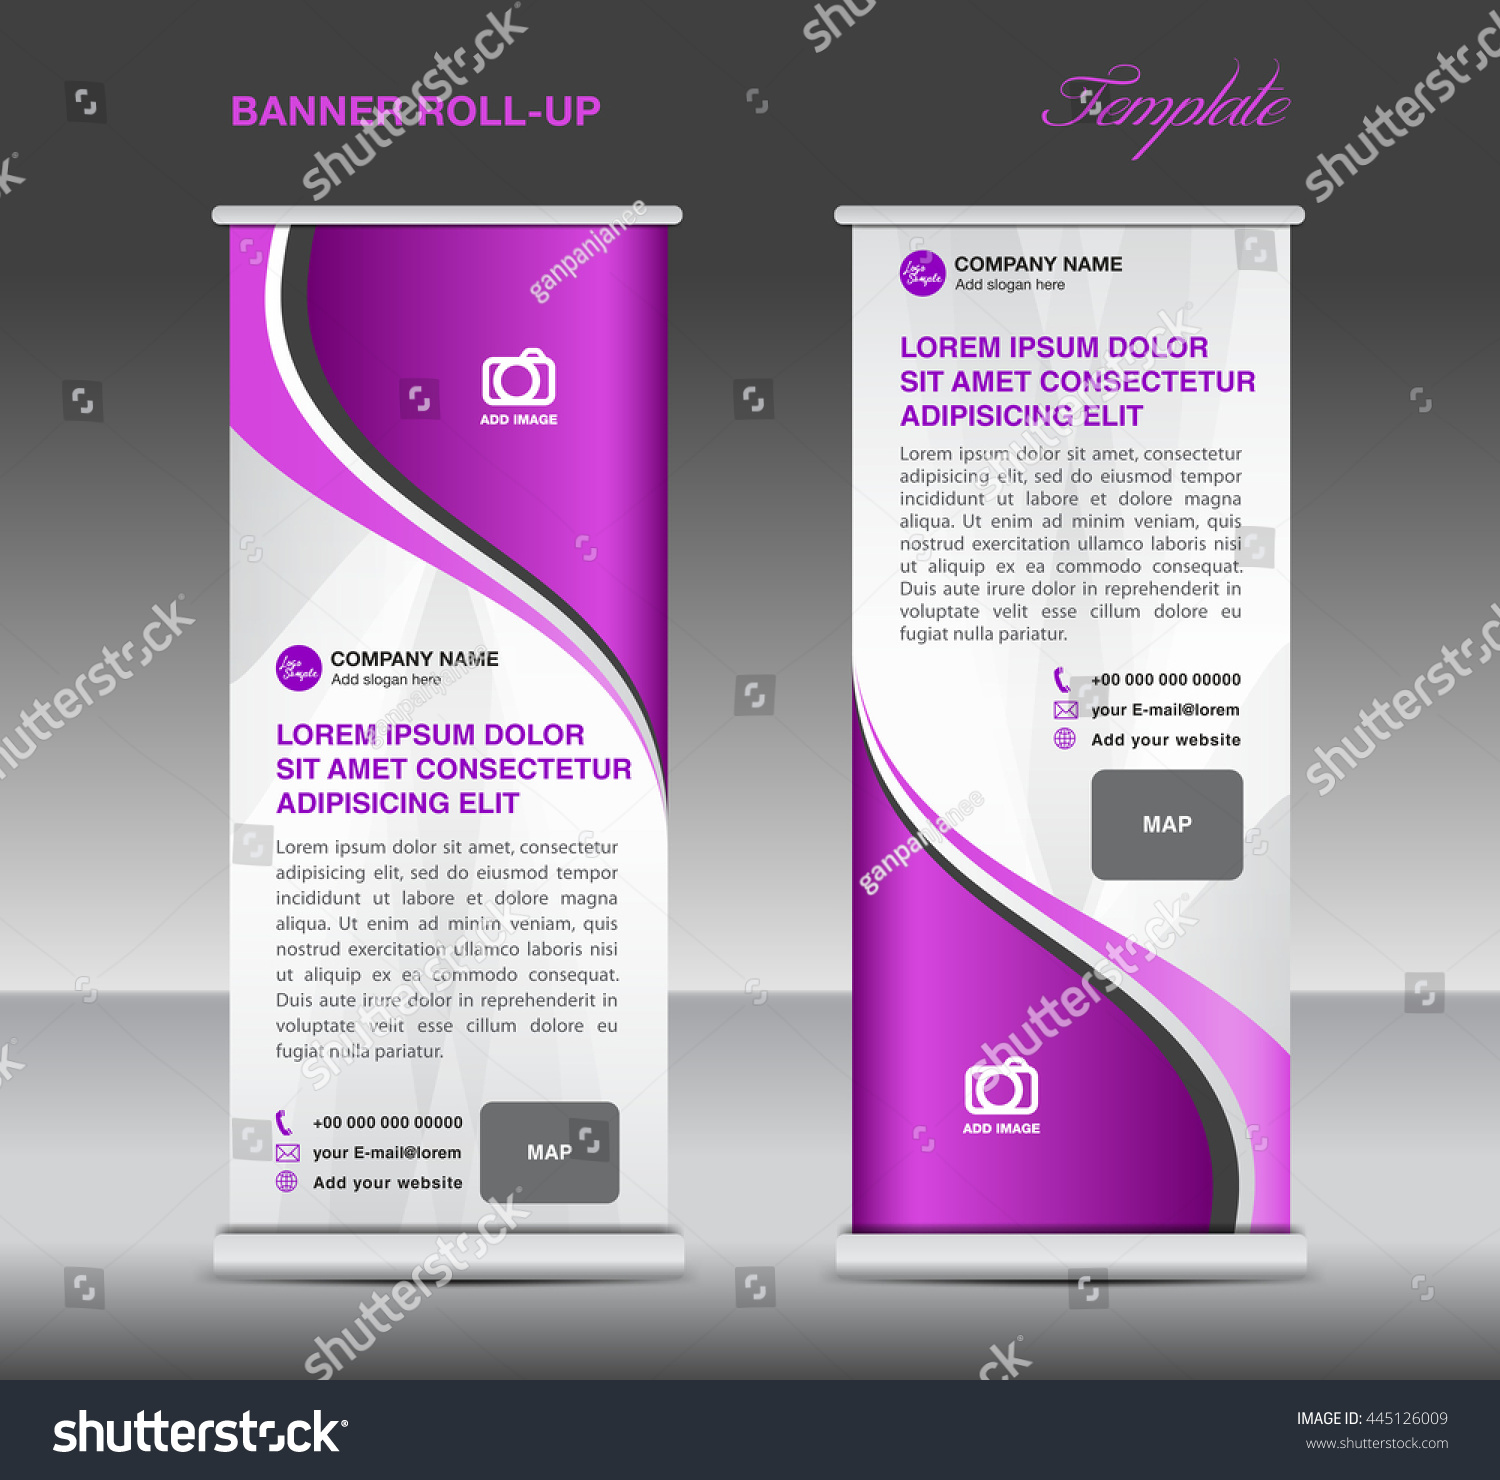 purple and white roll up banner stand template advertisement for purple and white roll up banner stand template advertisement for business advertisement display